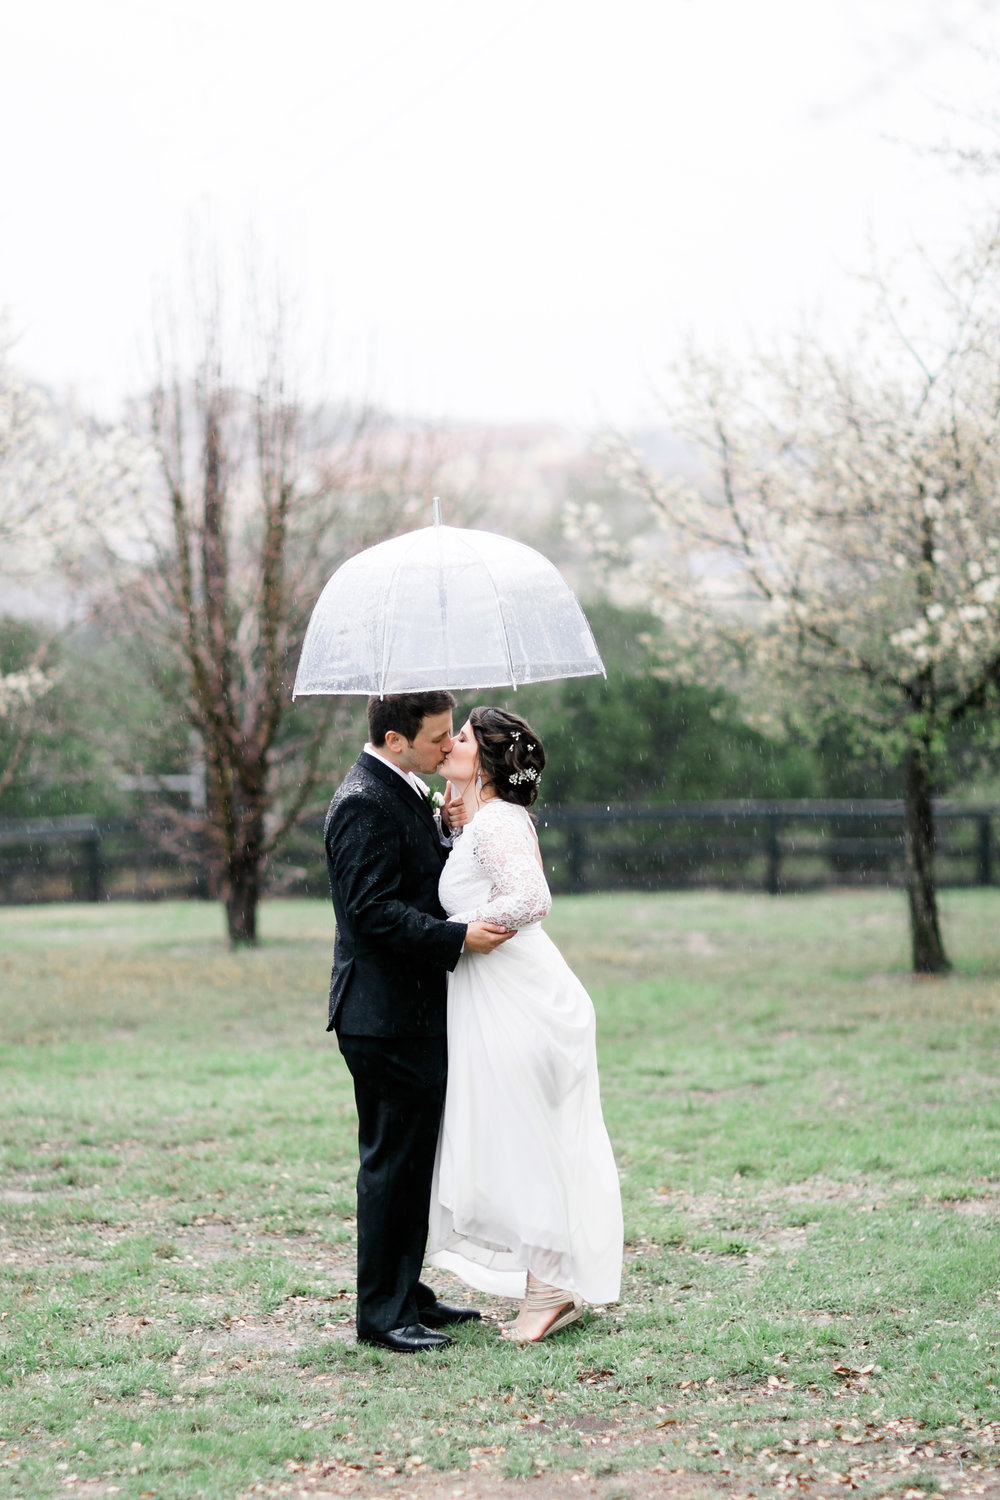 Austin_Texas_Fine_Art_Wedding_Photographer_Kayla_Snell_Photography_Antebellum_Oaks264.jpg